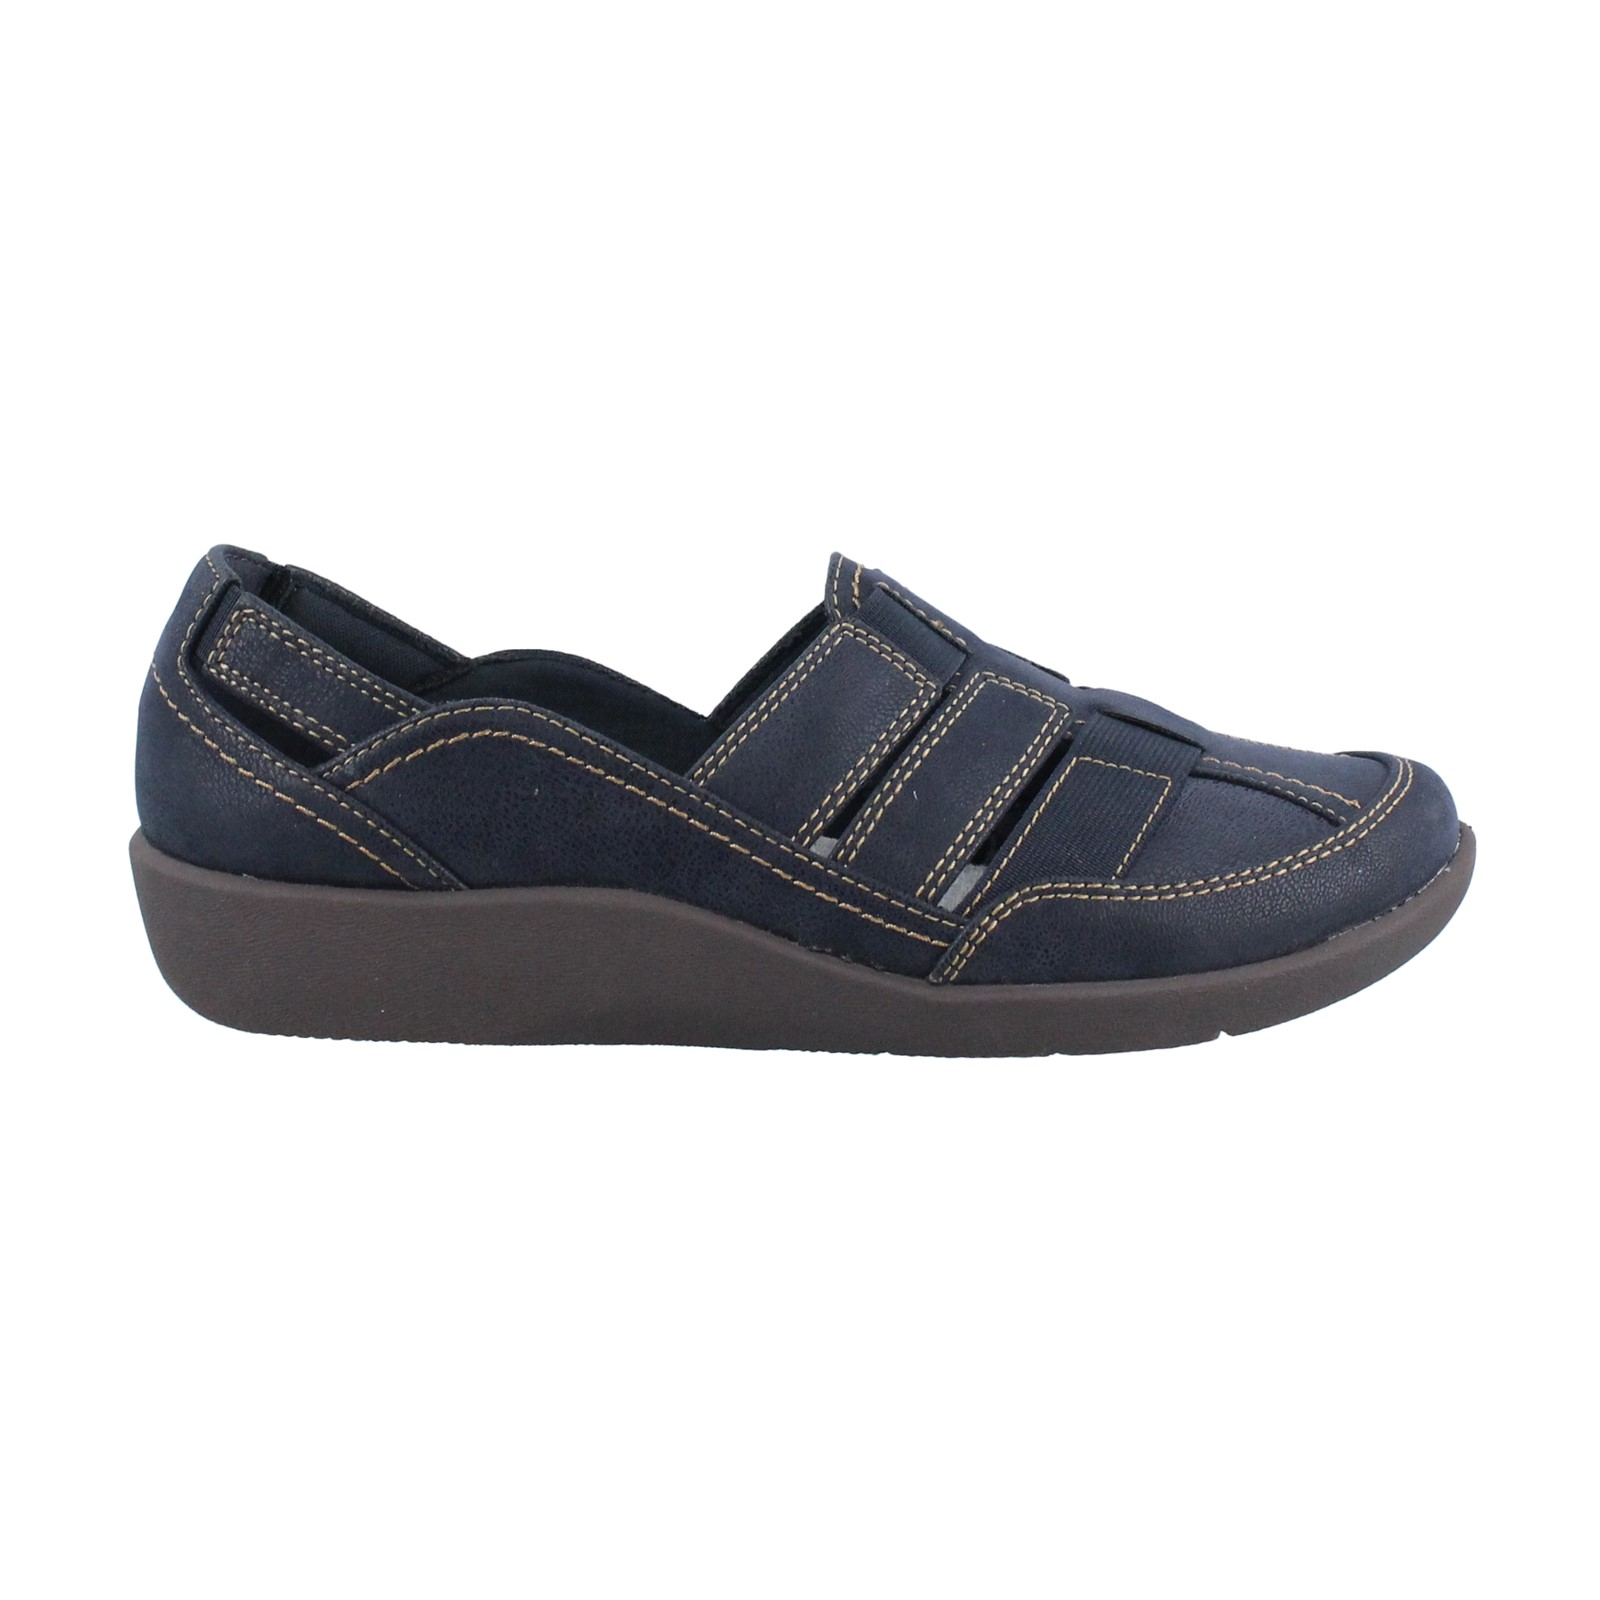 Women's Clarks, Sillian Stork Slip on Shoes